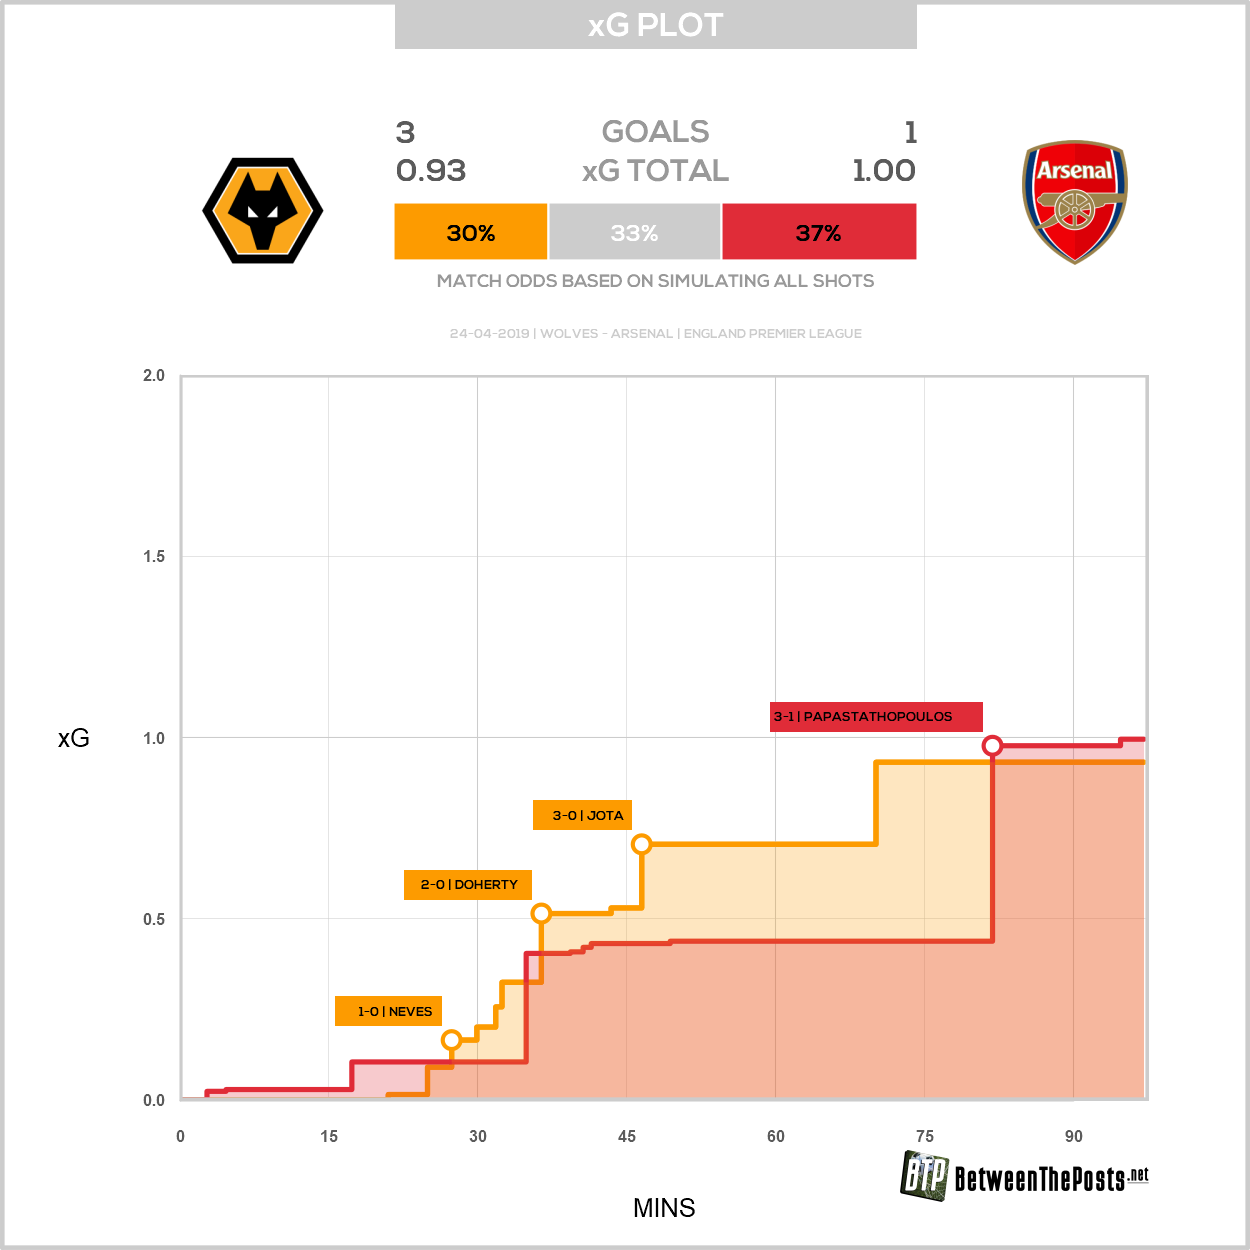 Expected goals plot Wolverhampton Wanderers Arsenal 3-1 Premier League